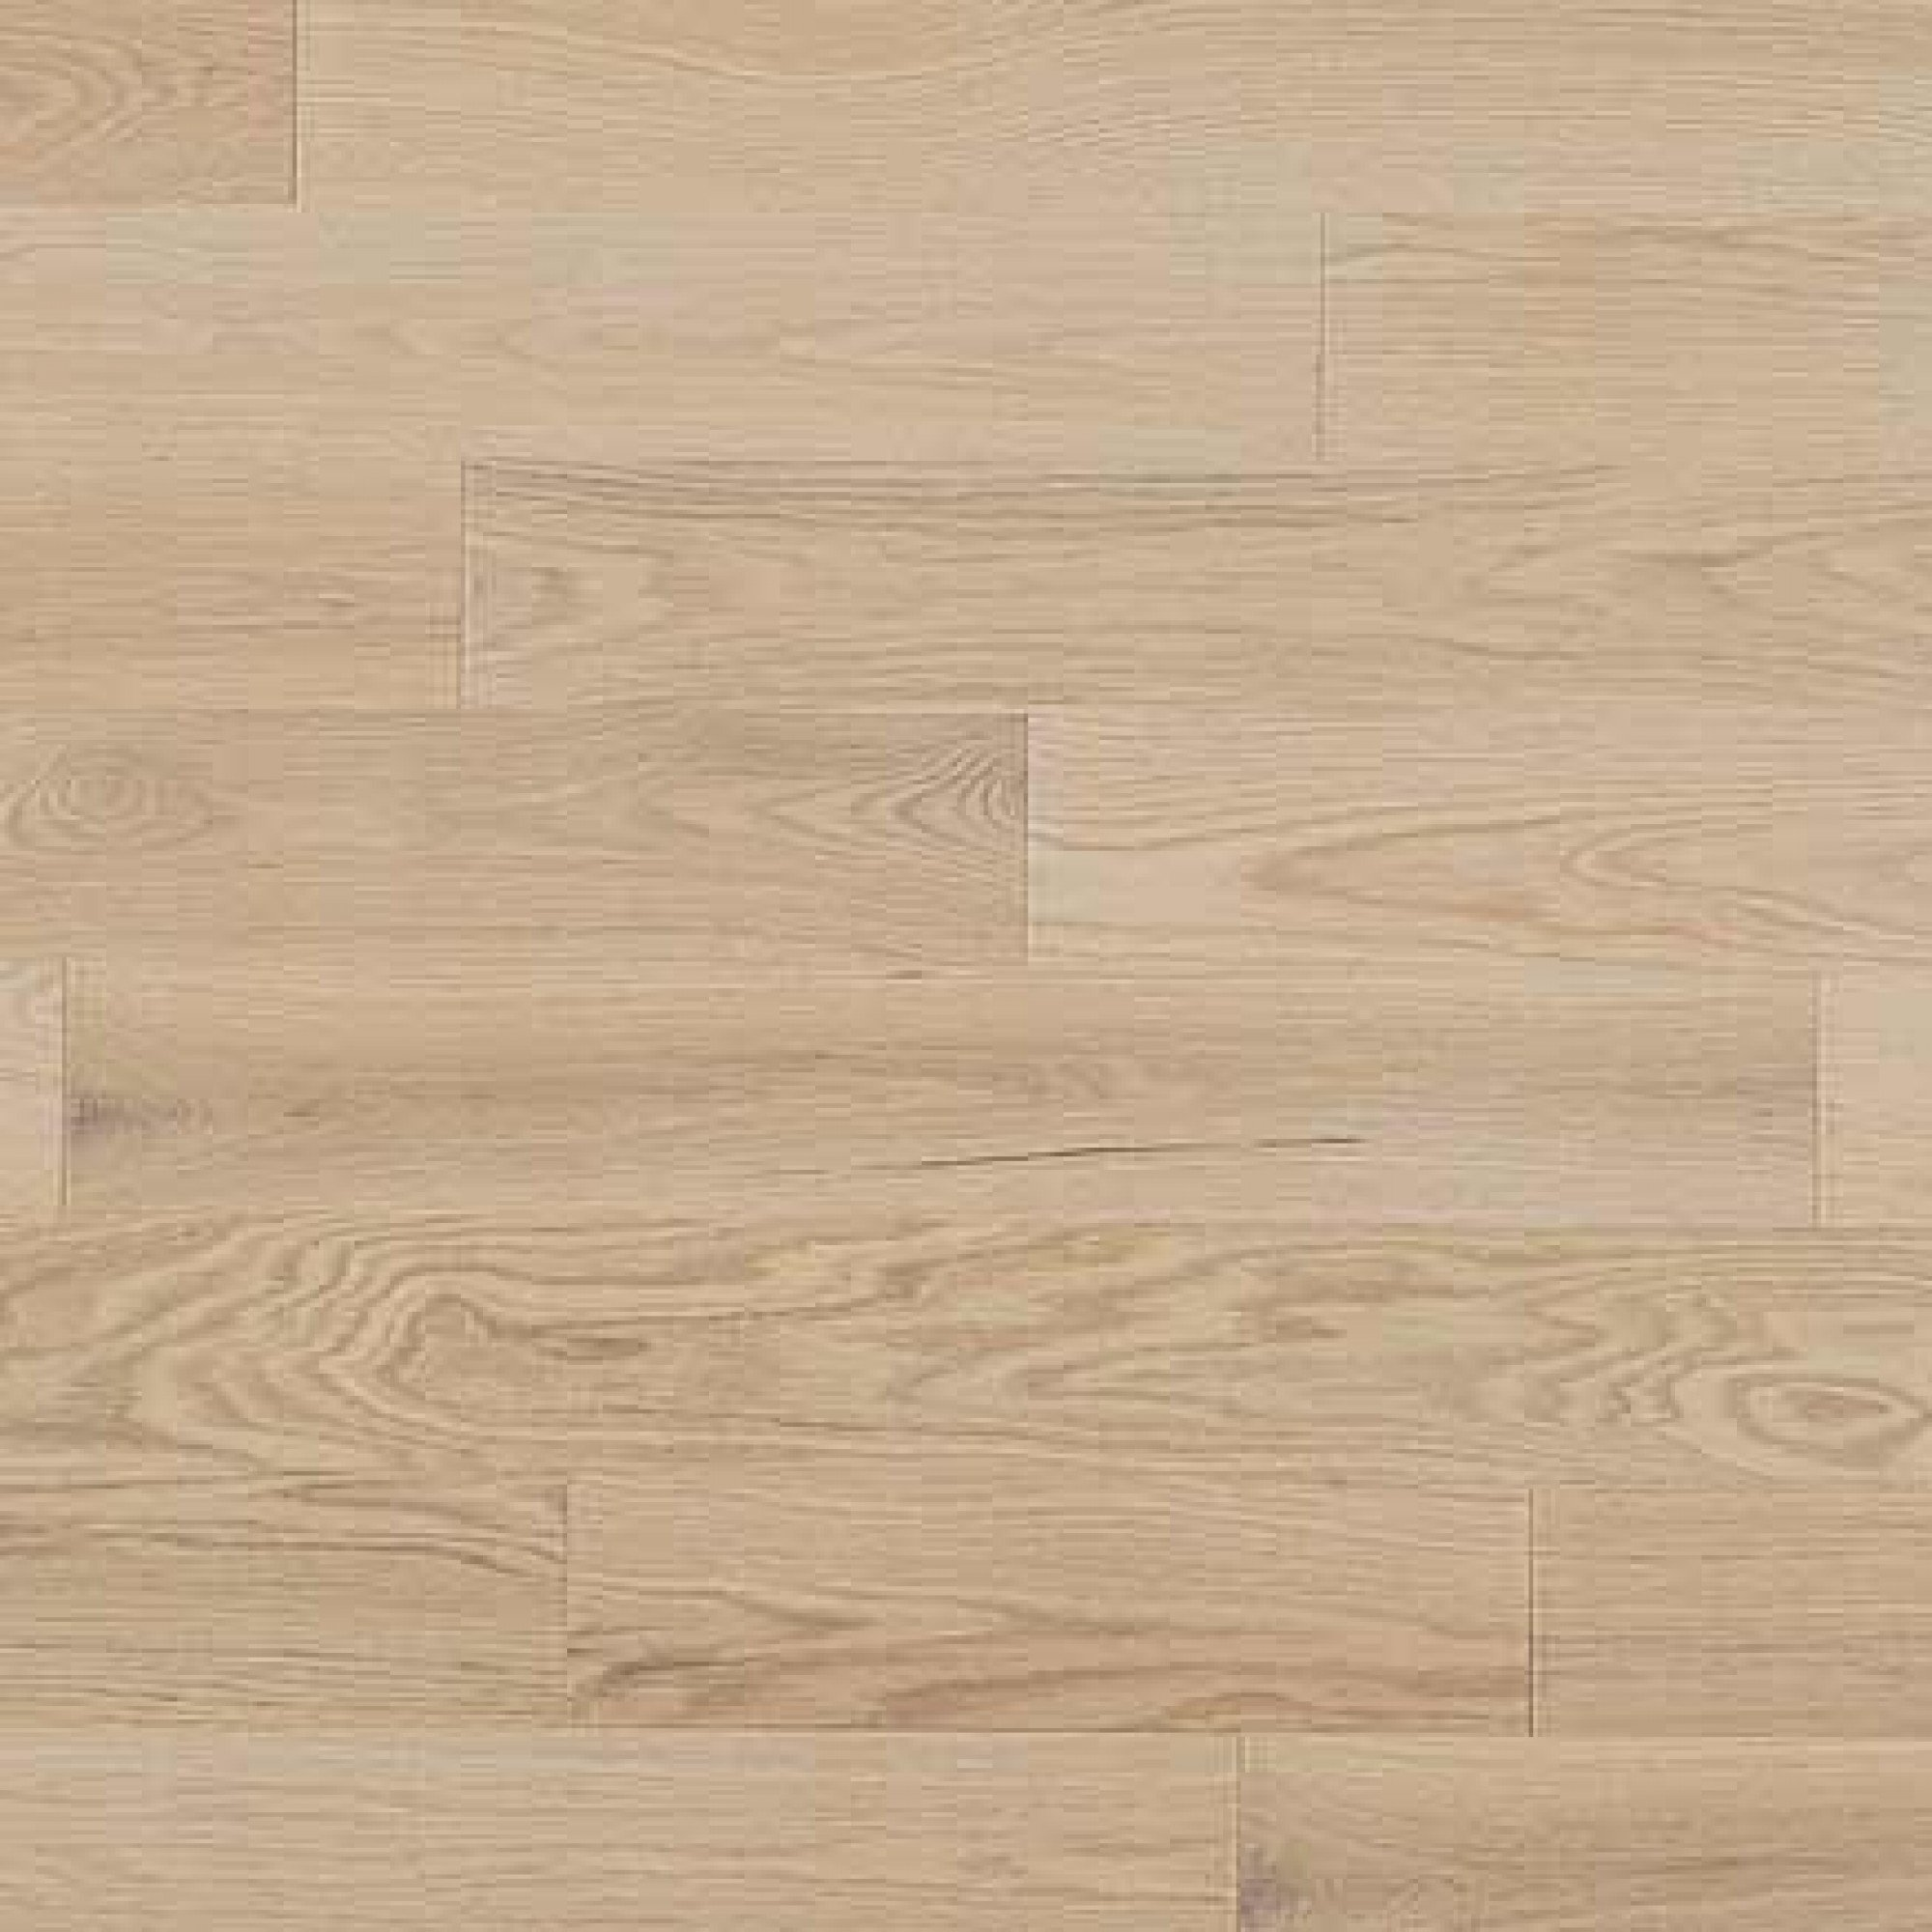 Alive red oak isla mirage hardwood floors for Mirage wood floors